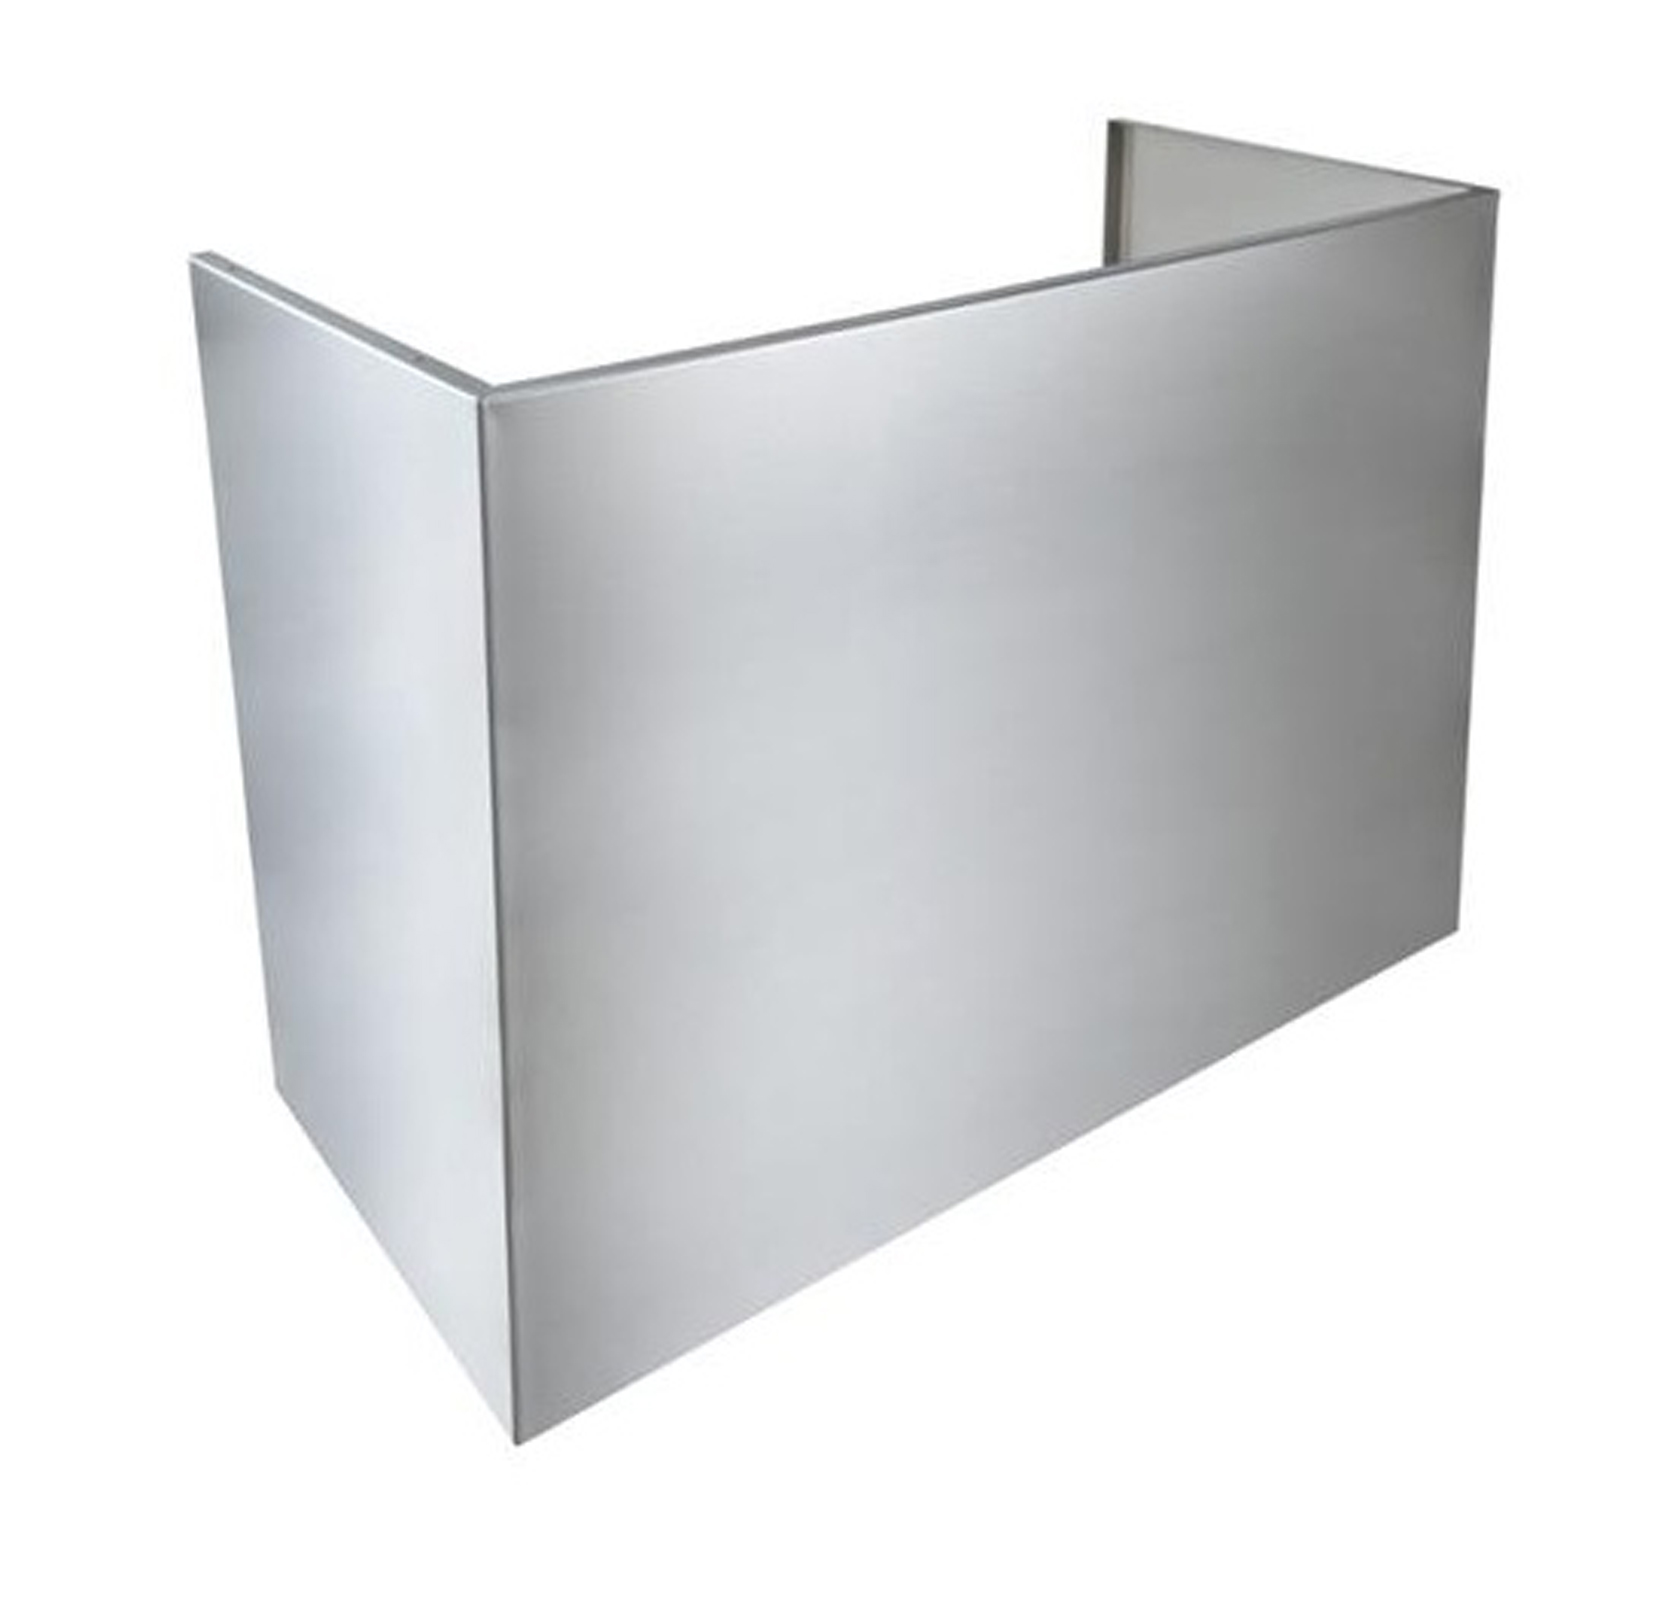 Standard Depth Flue Cover for EPD61 Series